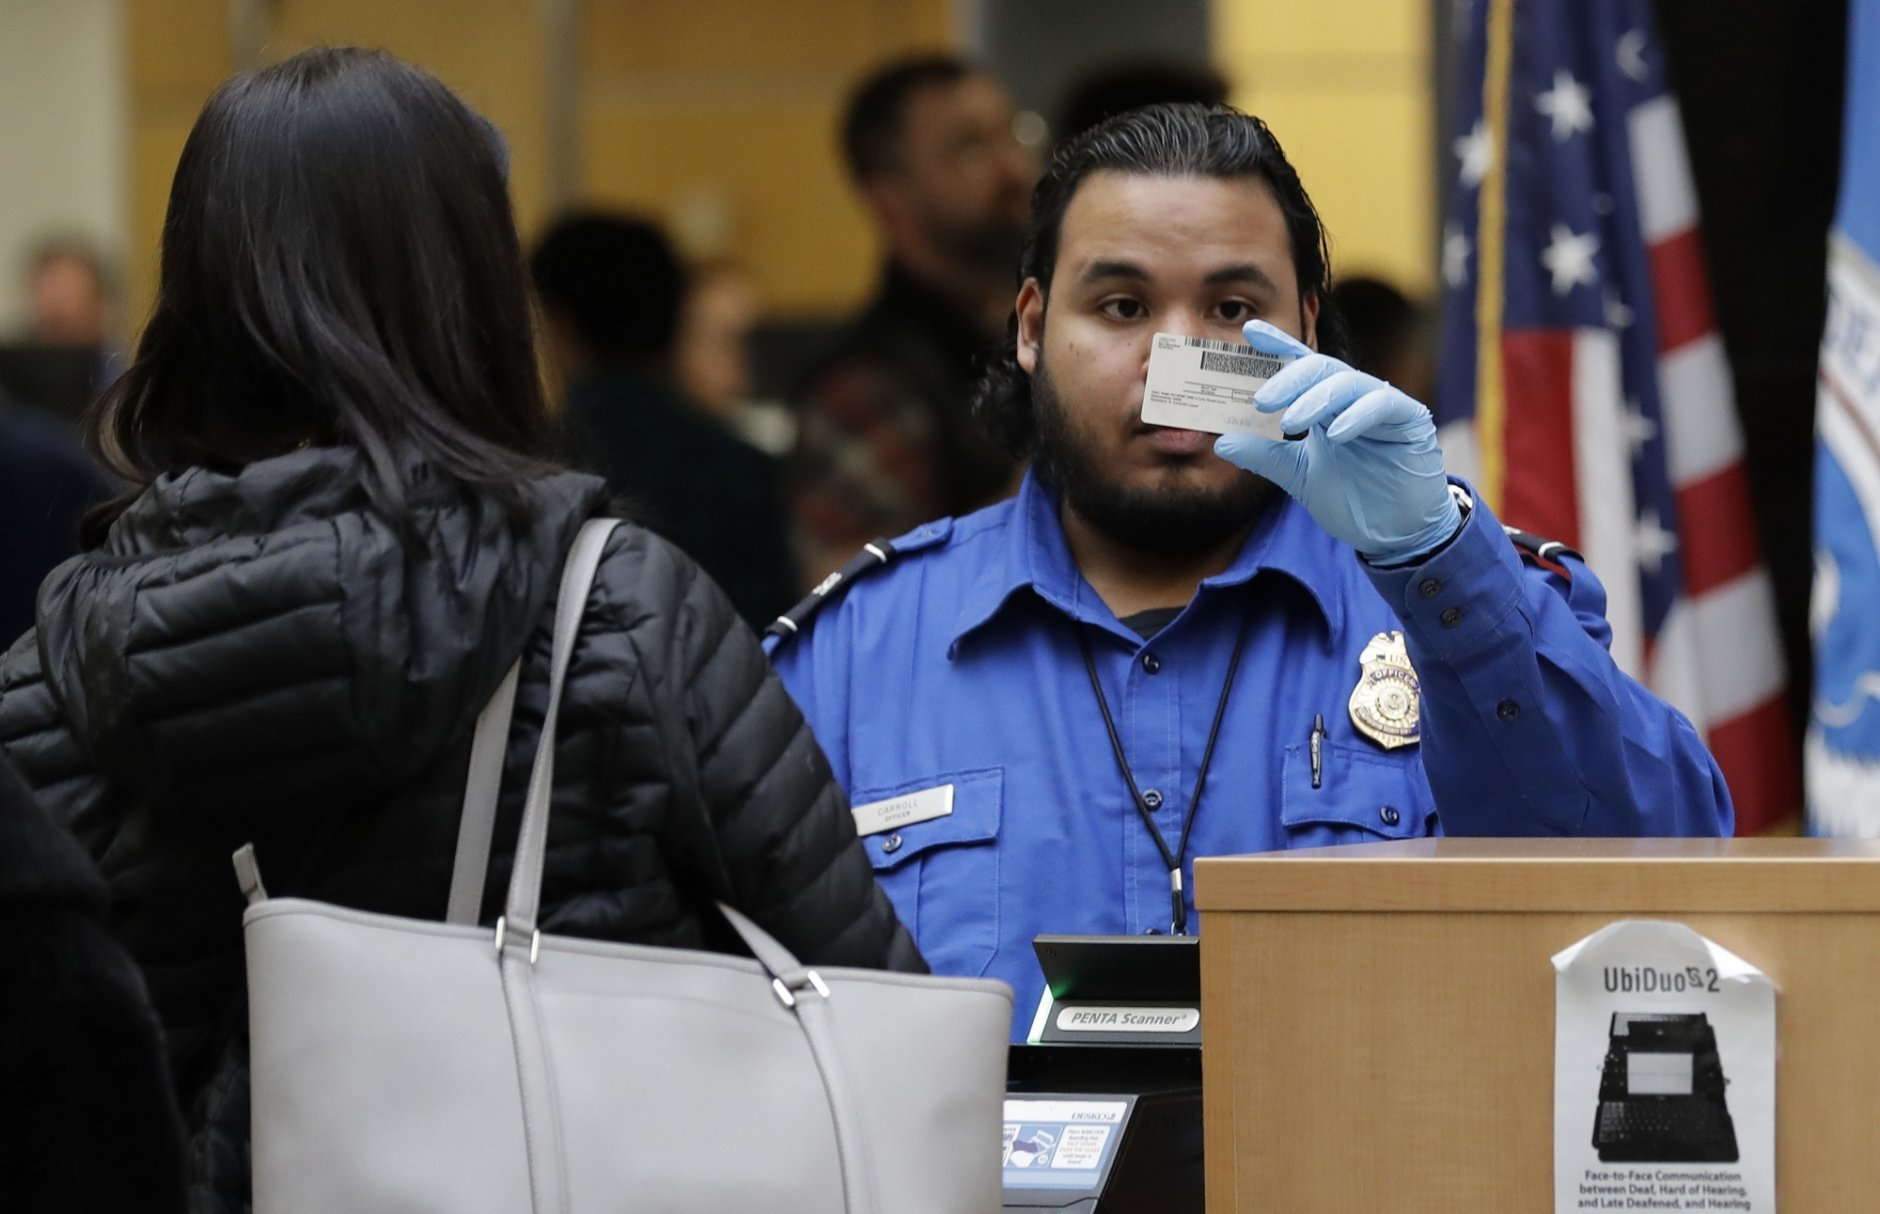 A TSA worker checks an identification card, Friday, Jan. 25, 2019, at Seattle-Tacoma International Airport in Seattle. Yielding to mounting pressure and growing disruption, President Donald Trump and congressional leaders on Friday reached a short-term deal to reopen the government for three weeks while negotiations continue over the president's demands for money to build his long-promised wall at the U.S.-Mexico border. (AP Photo/Ted S. Warren)